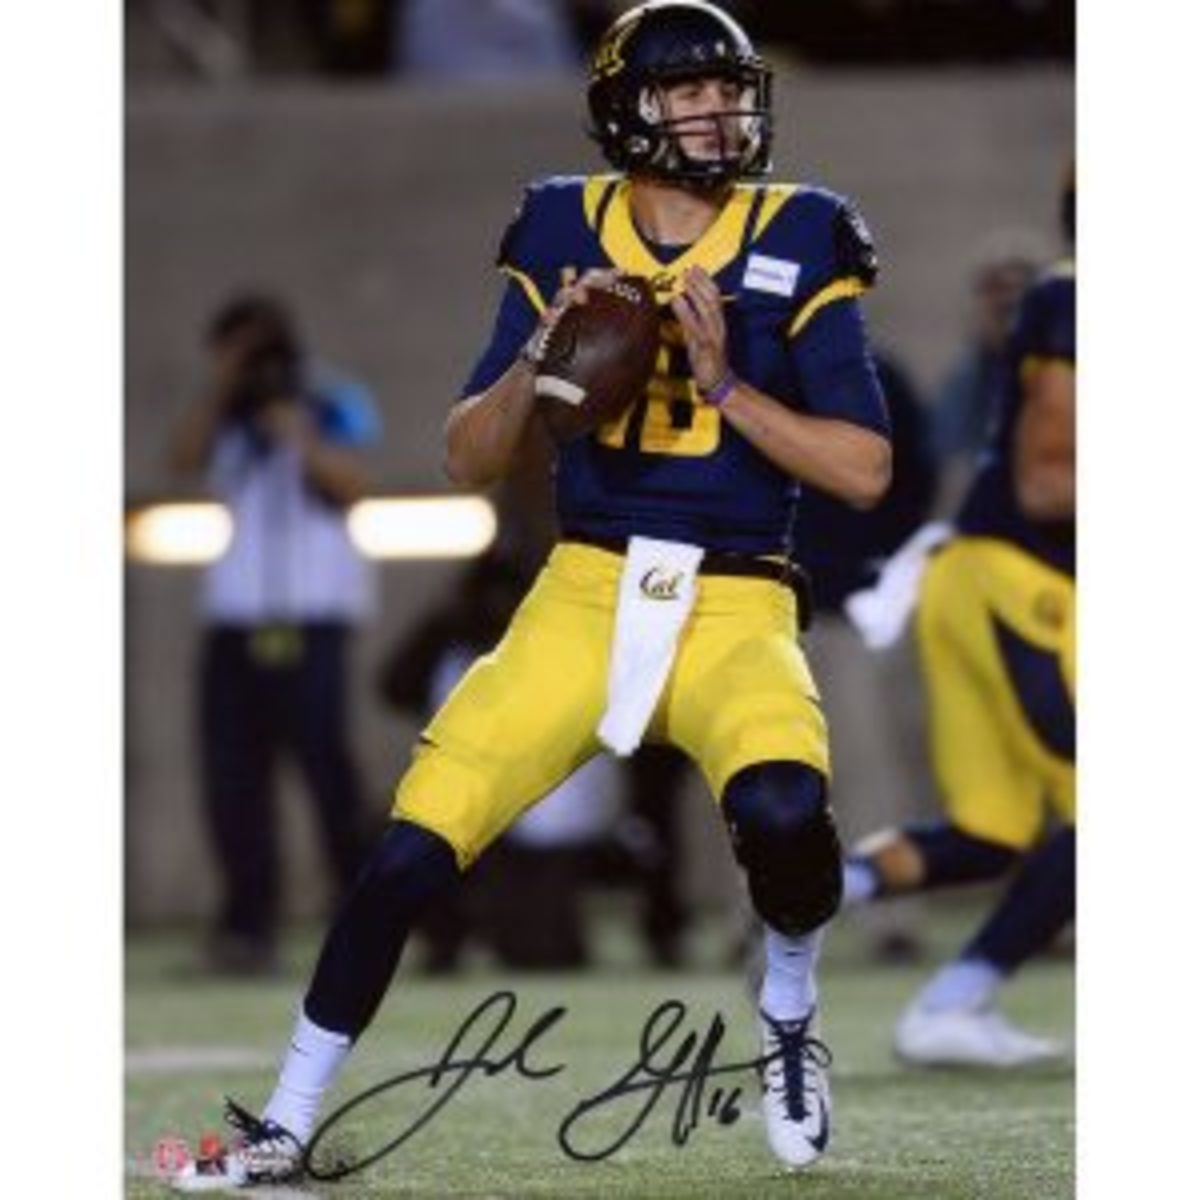 Fanatics Authentic is offering 8-by-10 signed photos of Goff for $120.